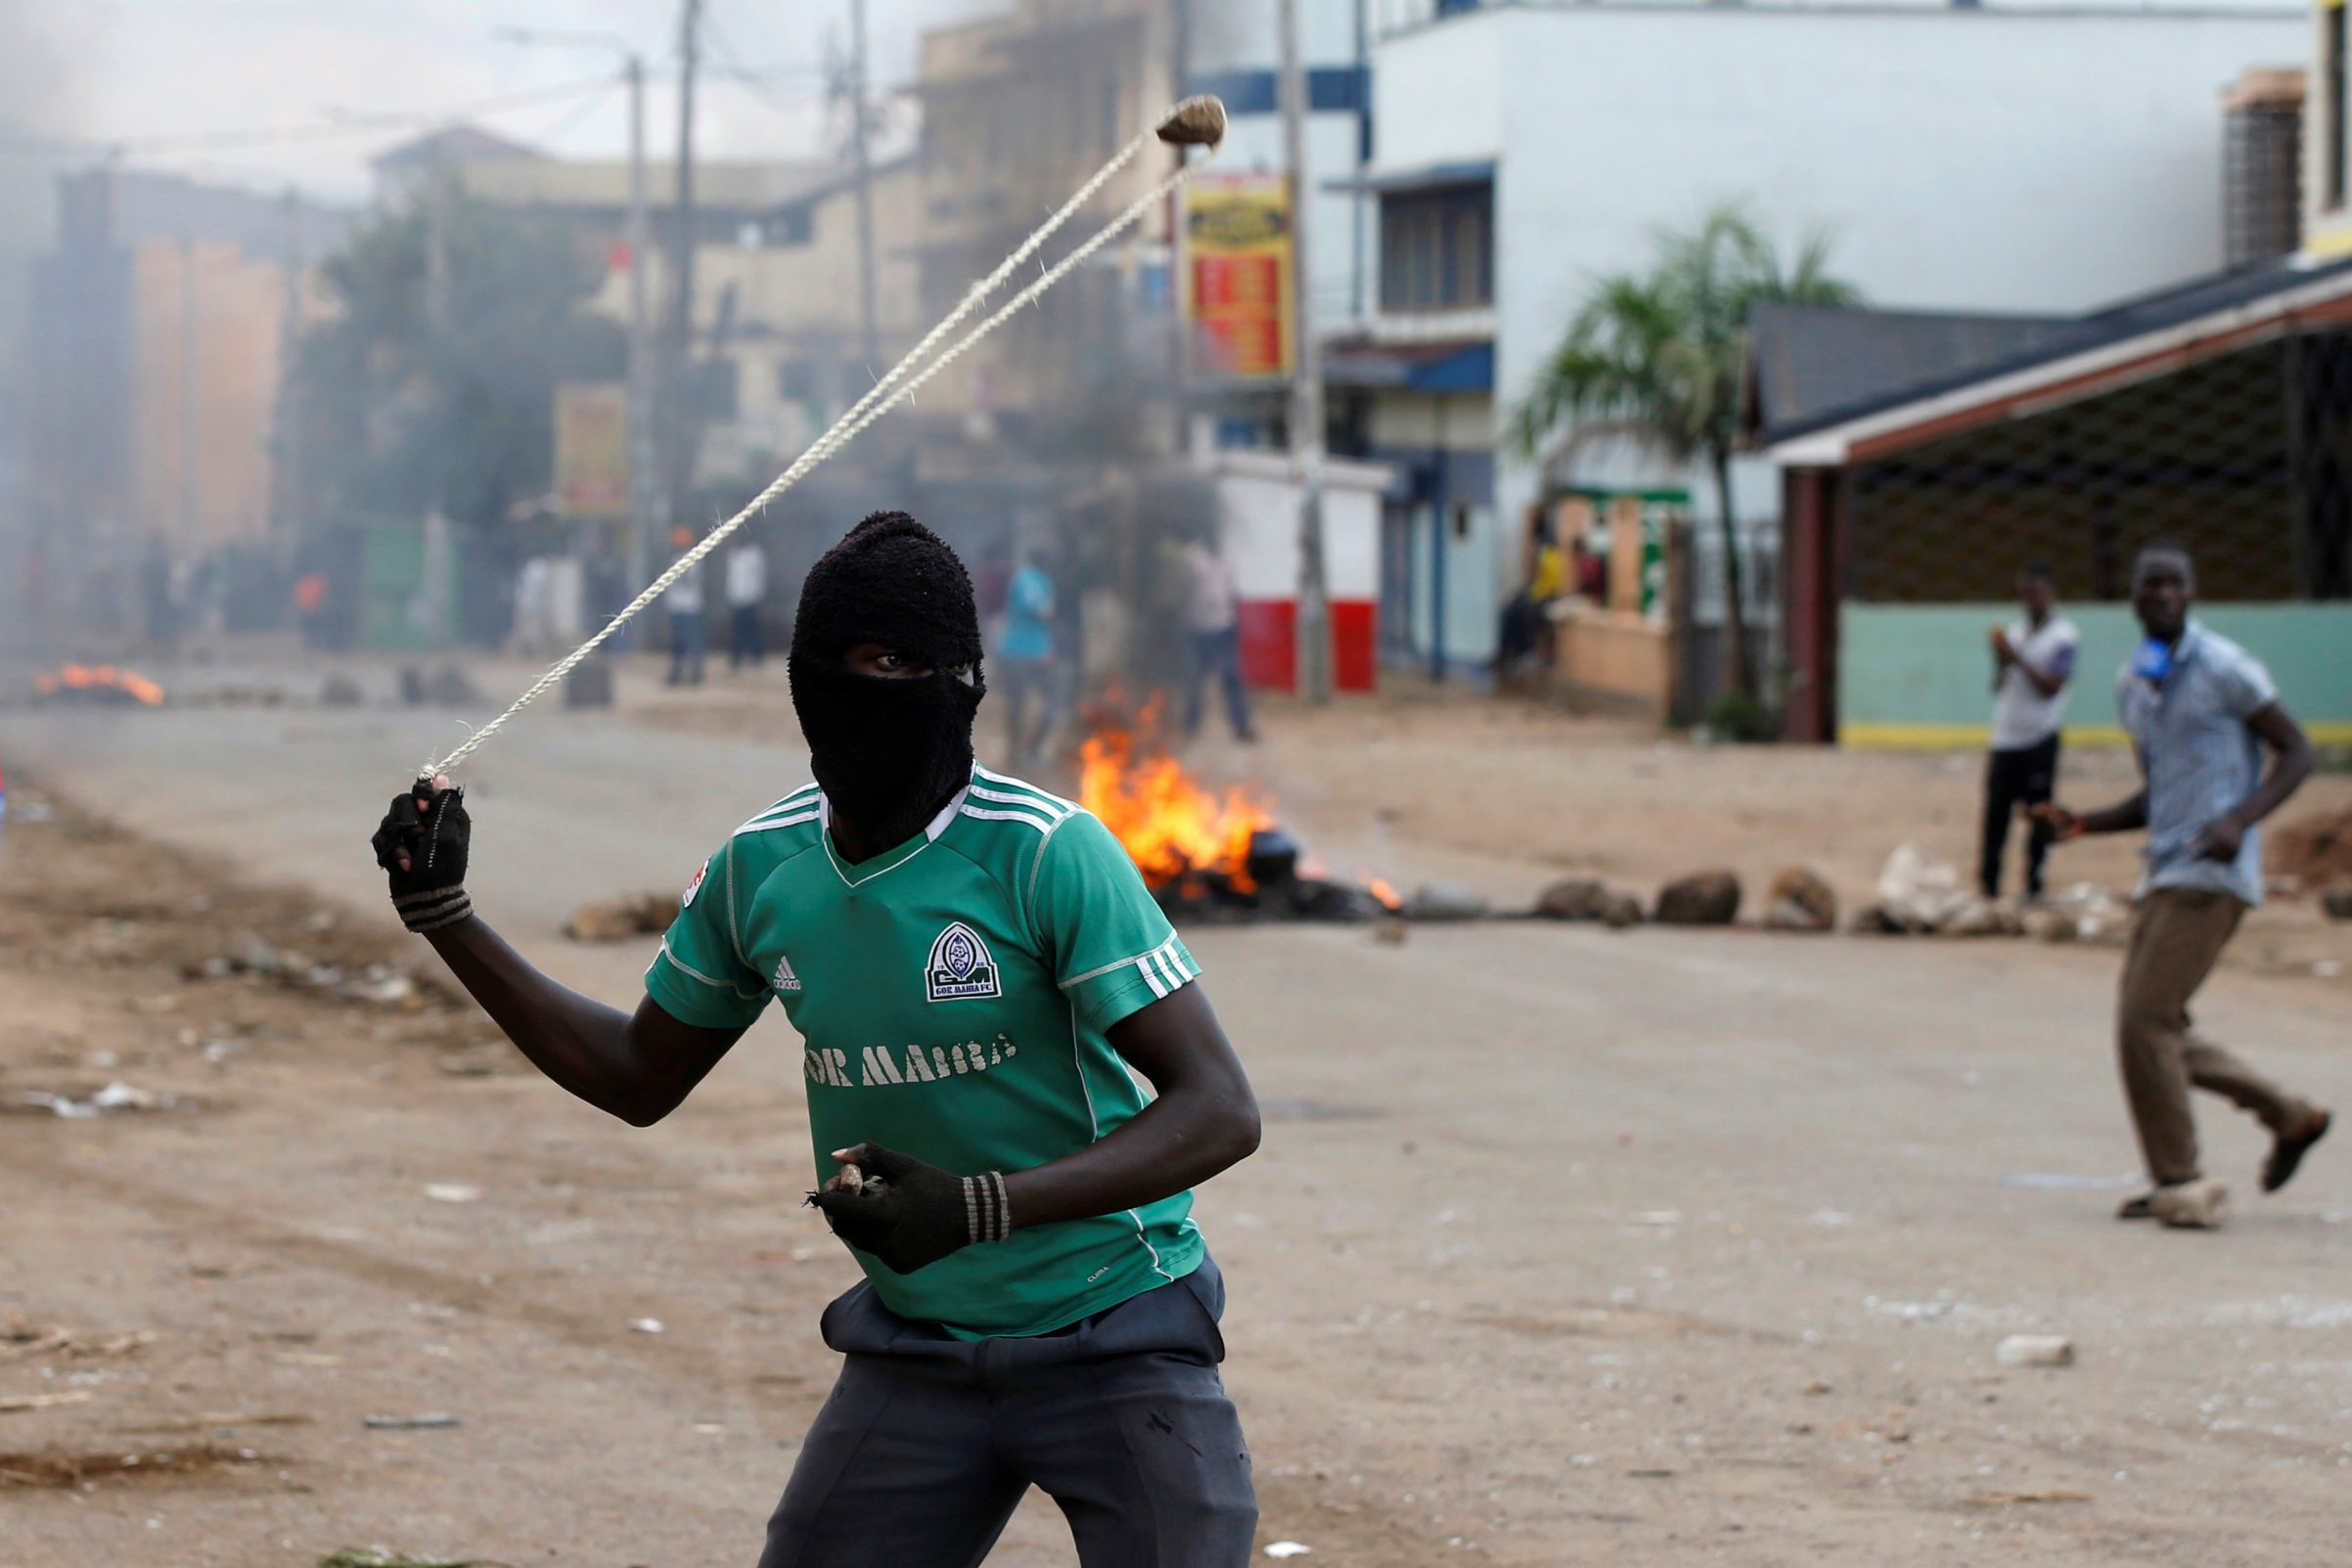 A supporter of Kenyan opposition leader Raila Odinga throws stones during a protest in Kisumu.